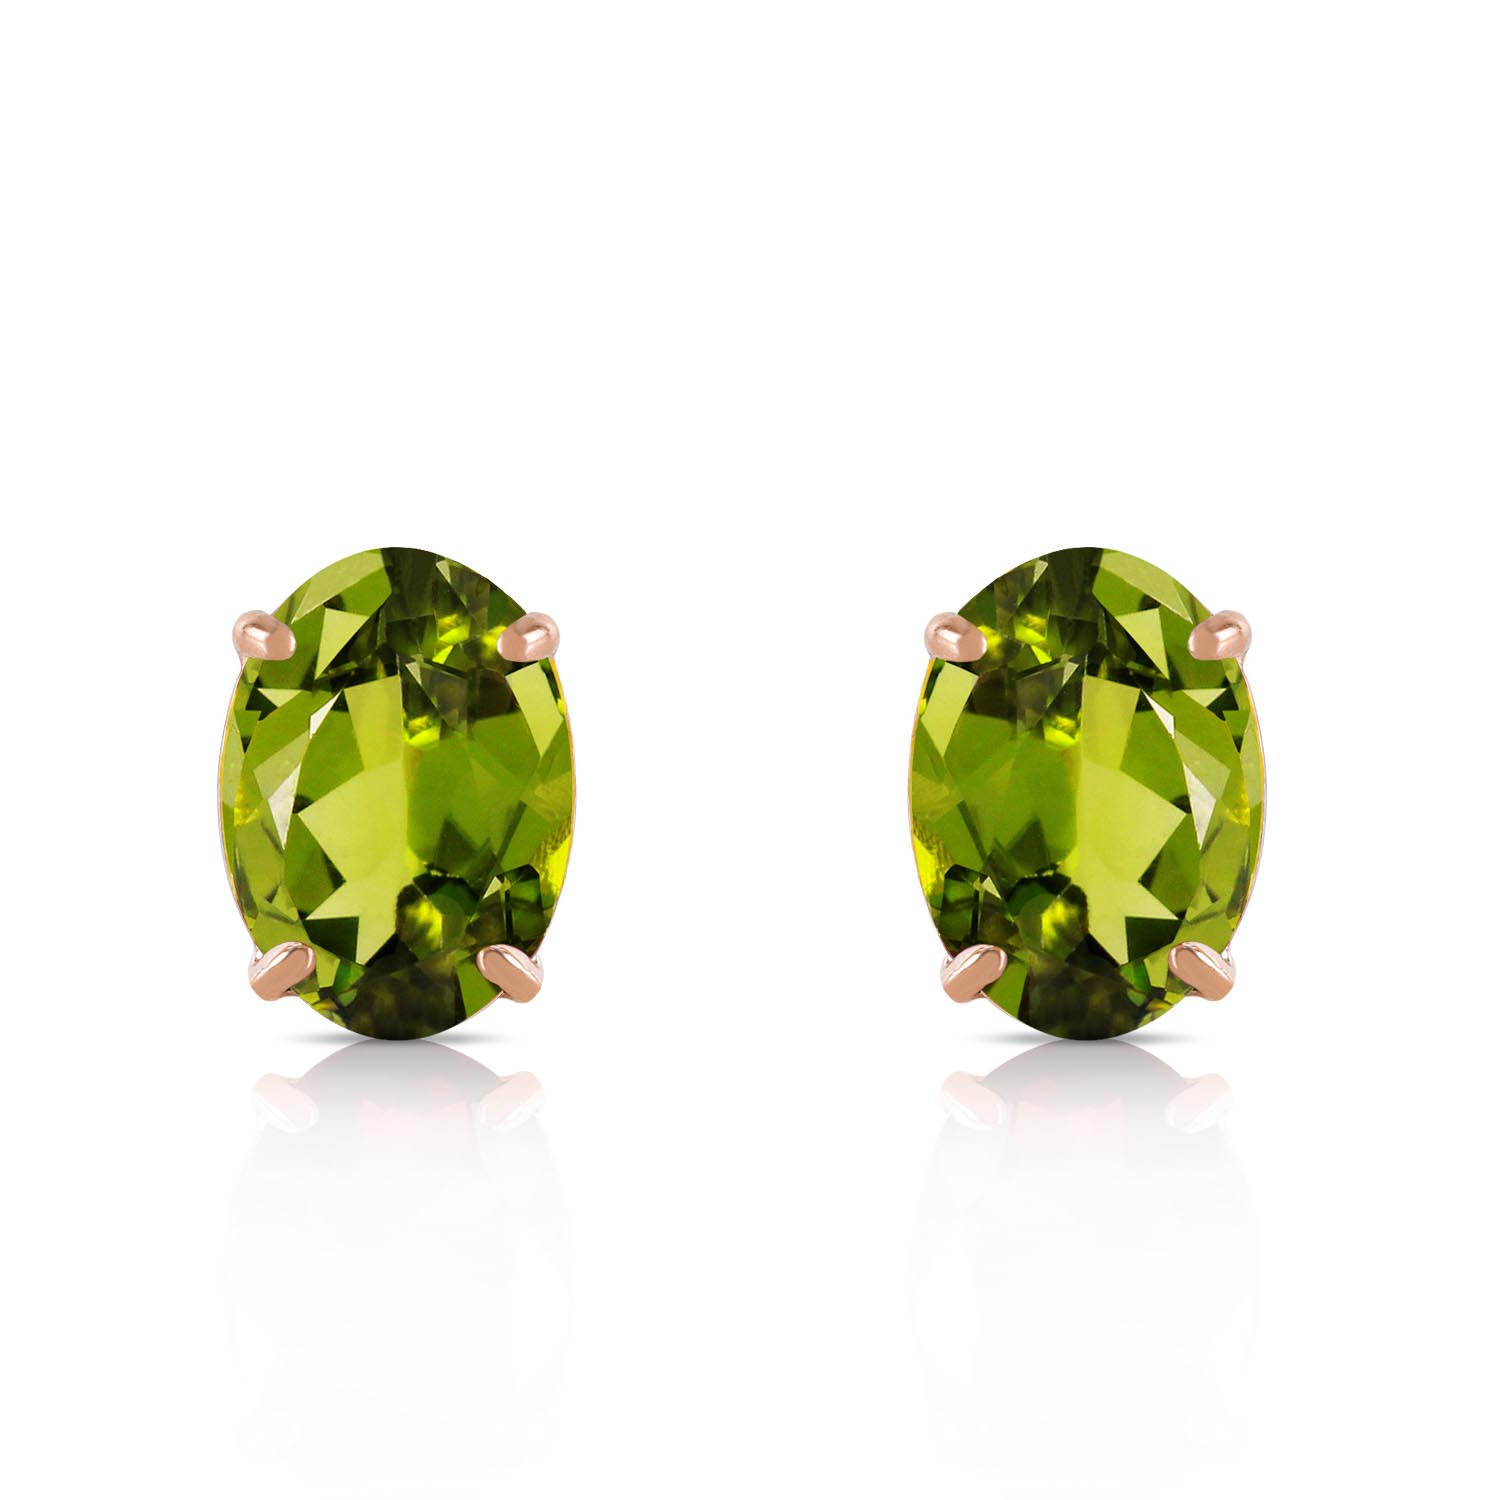 Peridot Stud Earrings 1.8ctw in 9ct Gold